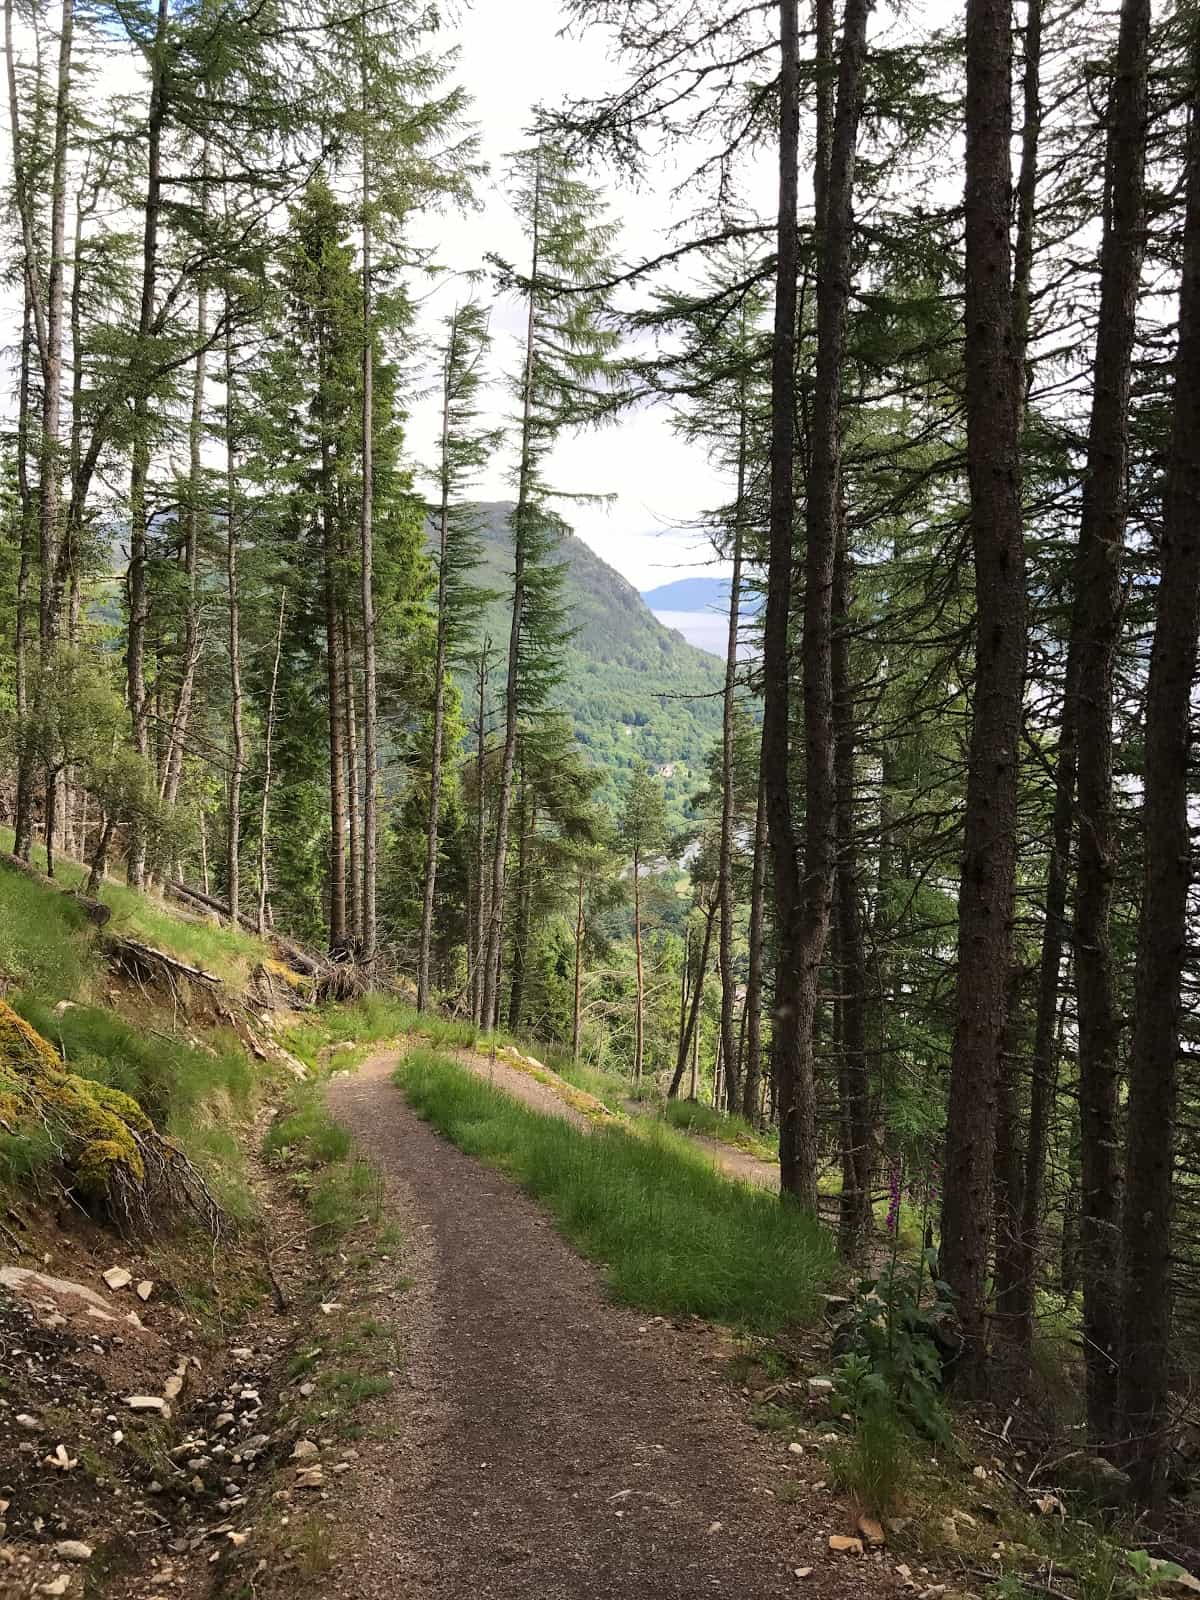 Descent into Invermoriston, Hiking the Great Glen Way